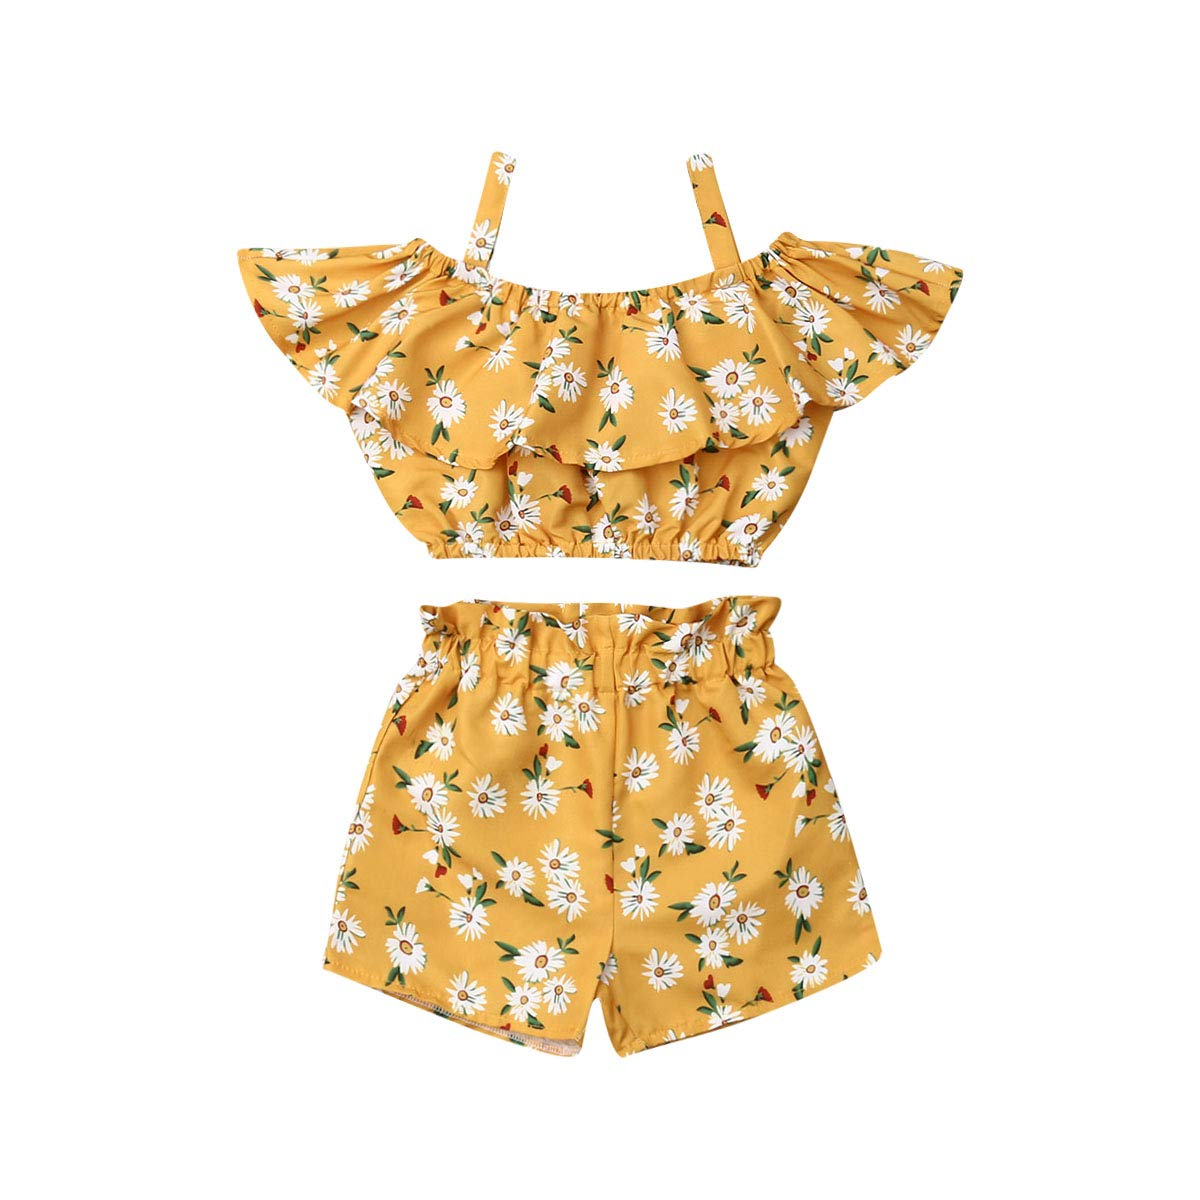 2Pcs Toddler Baby Girls Clothes Halter Ruffle Crop Top Floral Short Pants Summer Outfits Clothing (2-3T,Yellow Daisy)